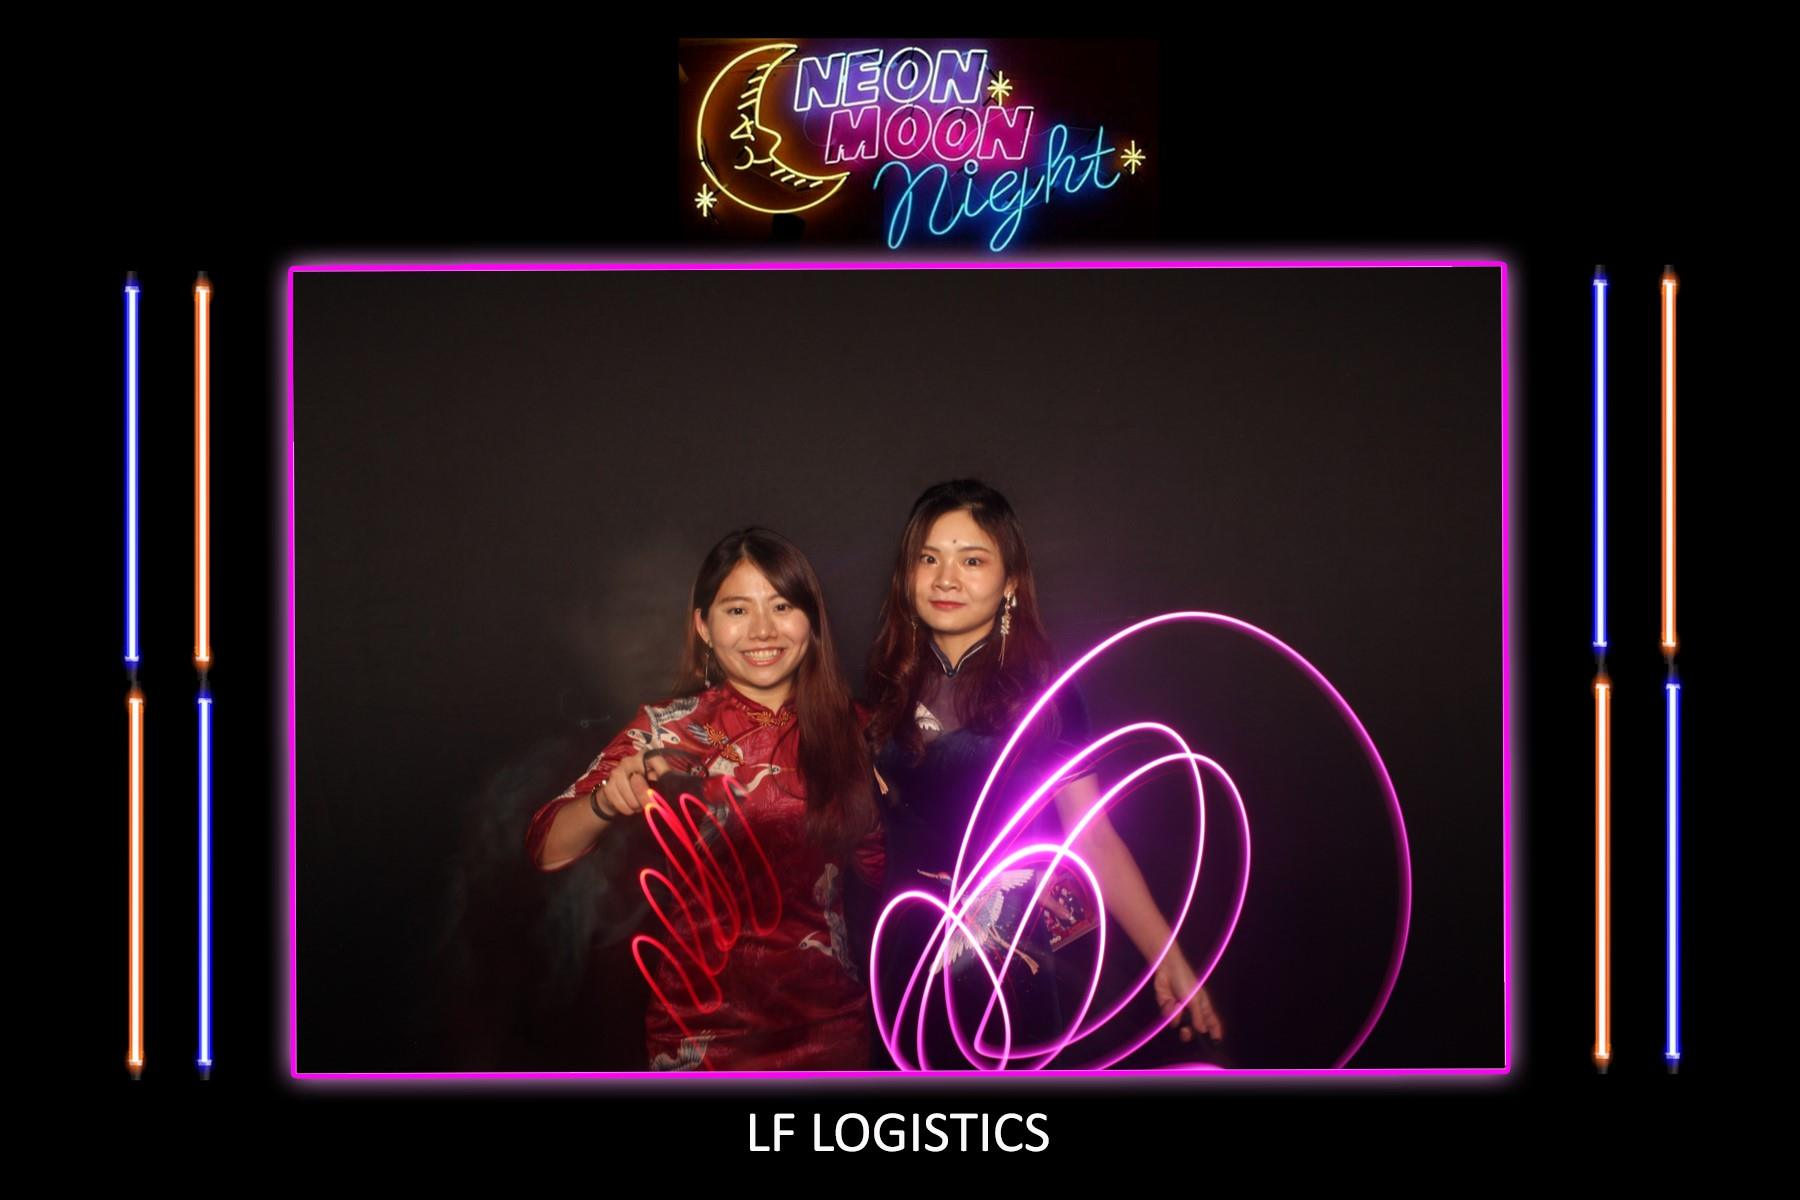 Printaparty's Light Painting Photo Booth